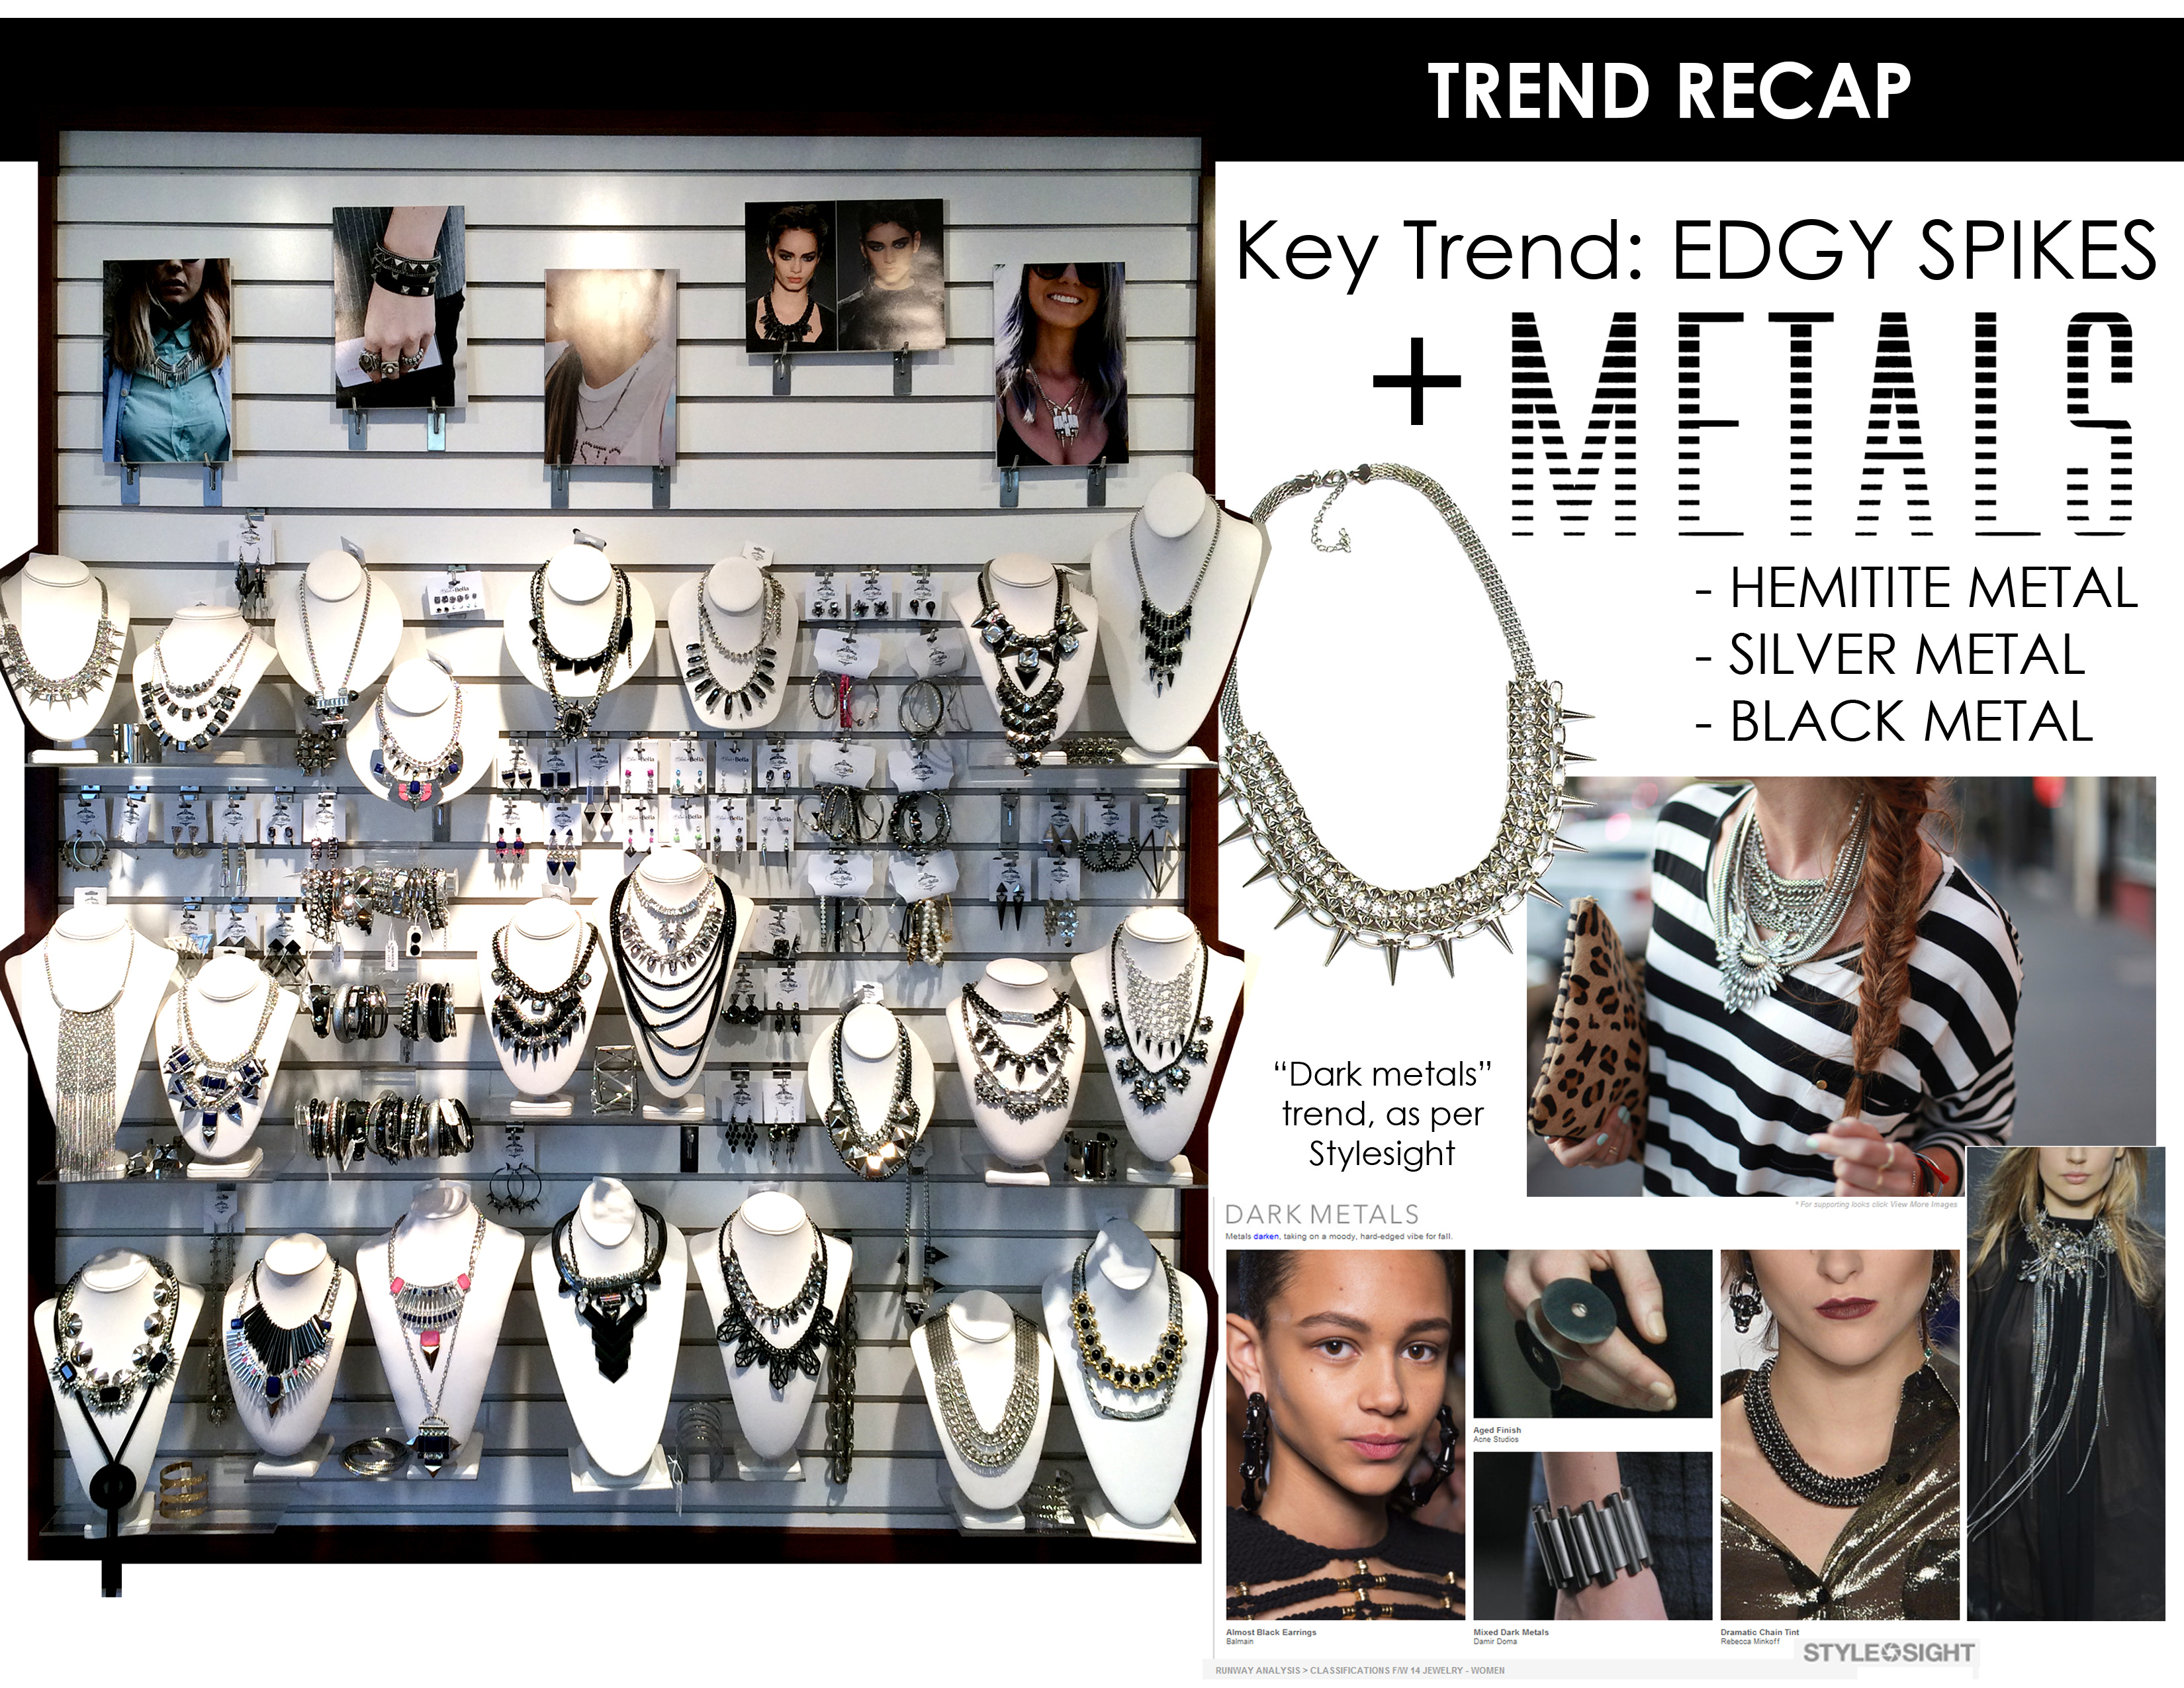 Showroom Trend Recap for Metals